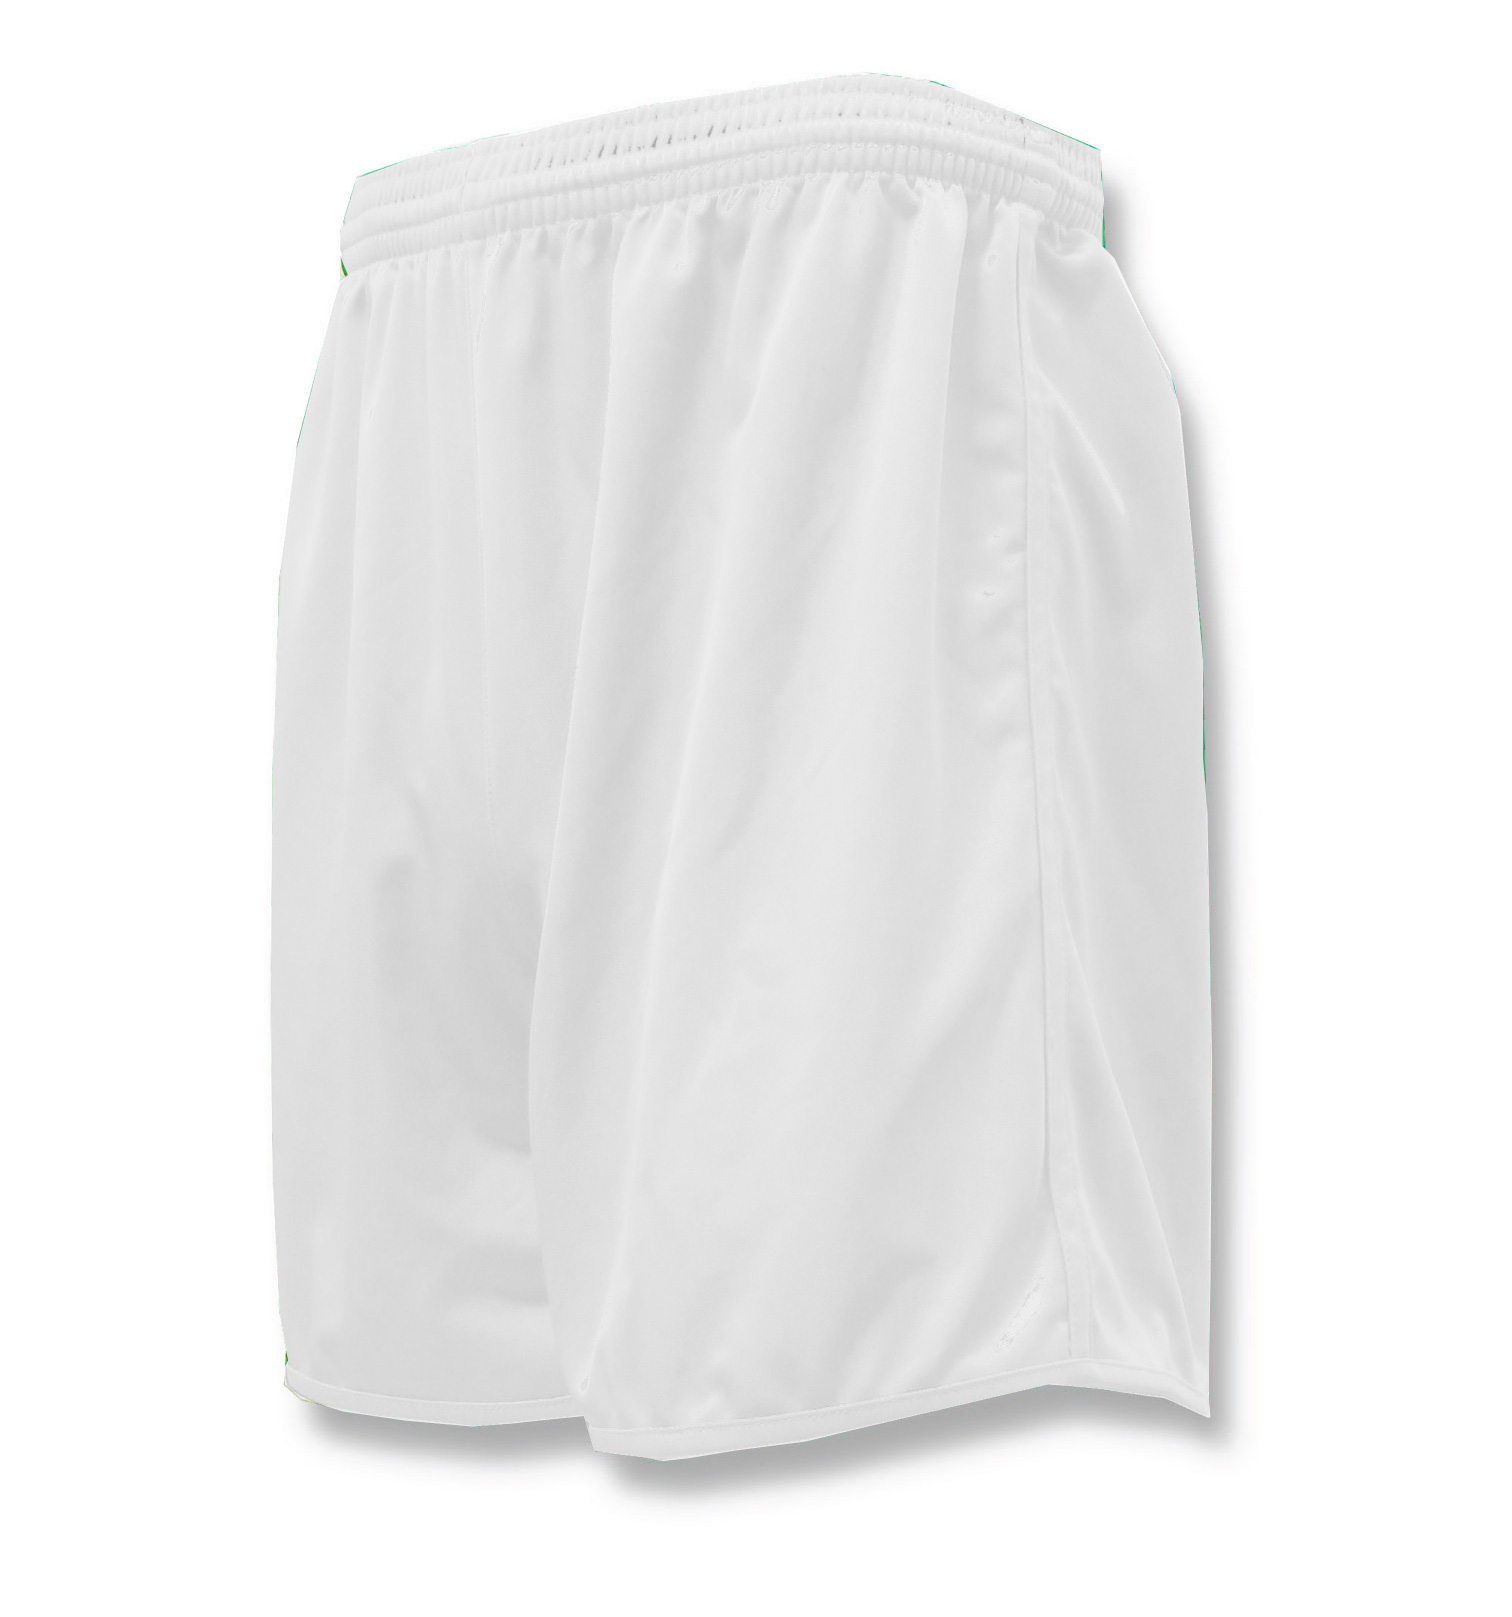 Bravo soccer shorts in white by Code Four Athletics